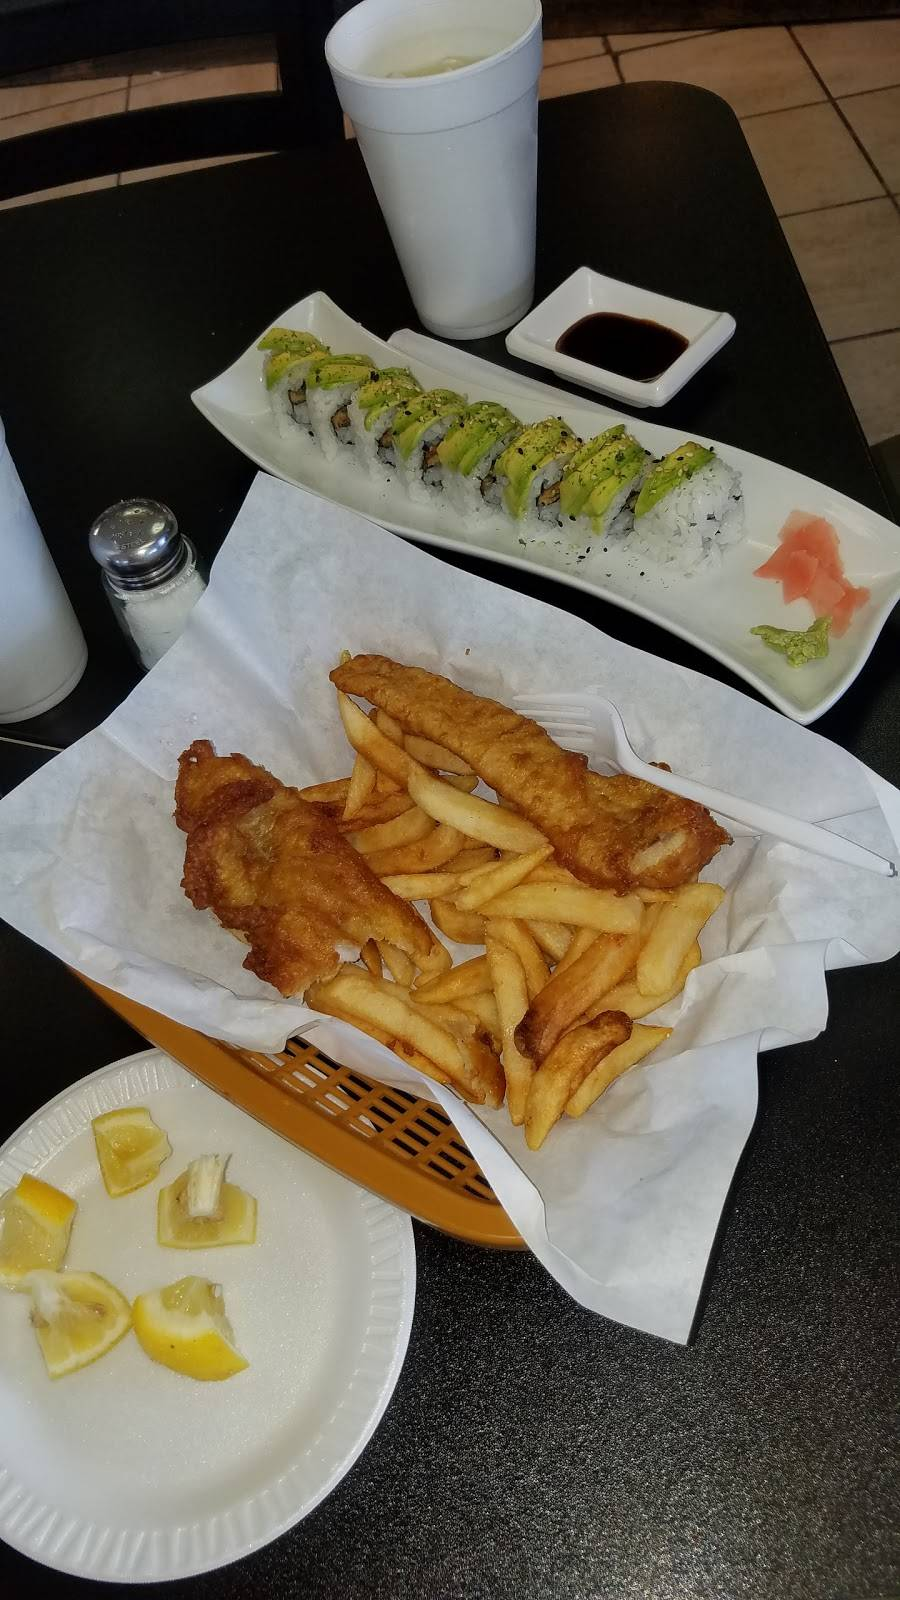 Tugboat Fish and Chips 22 - restaurant  | Photo 9 of 9 | Address: 5501 Dyer St C, El Paso, TX 79904, USA | Phone: (915) 566-2878